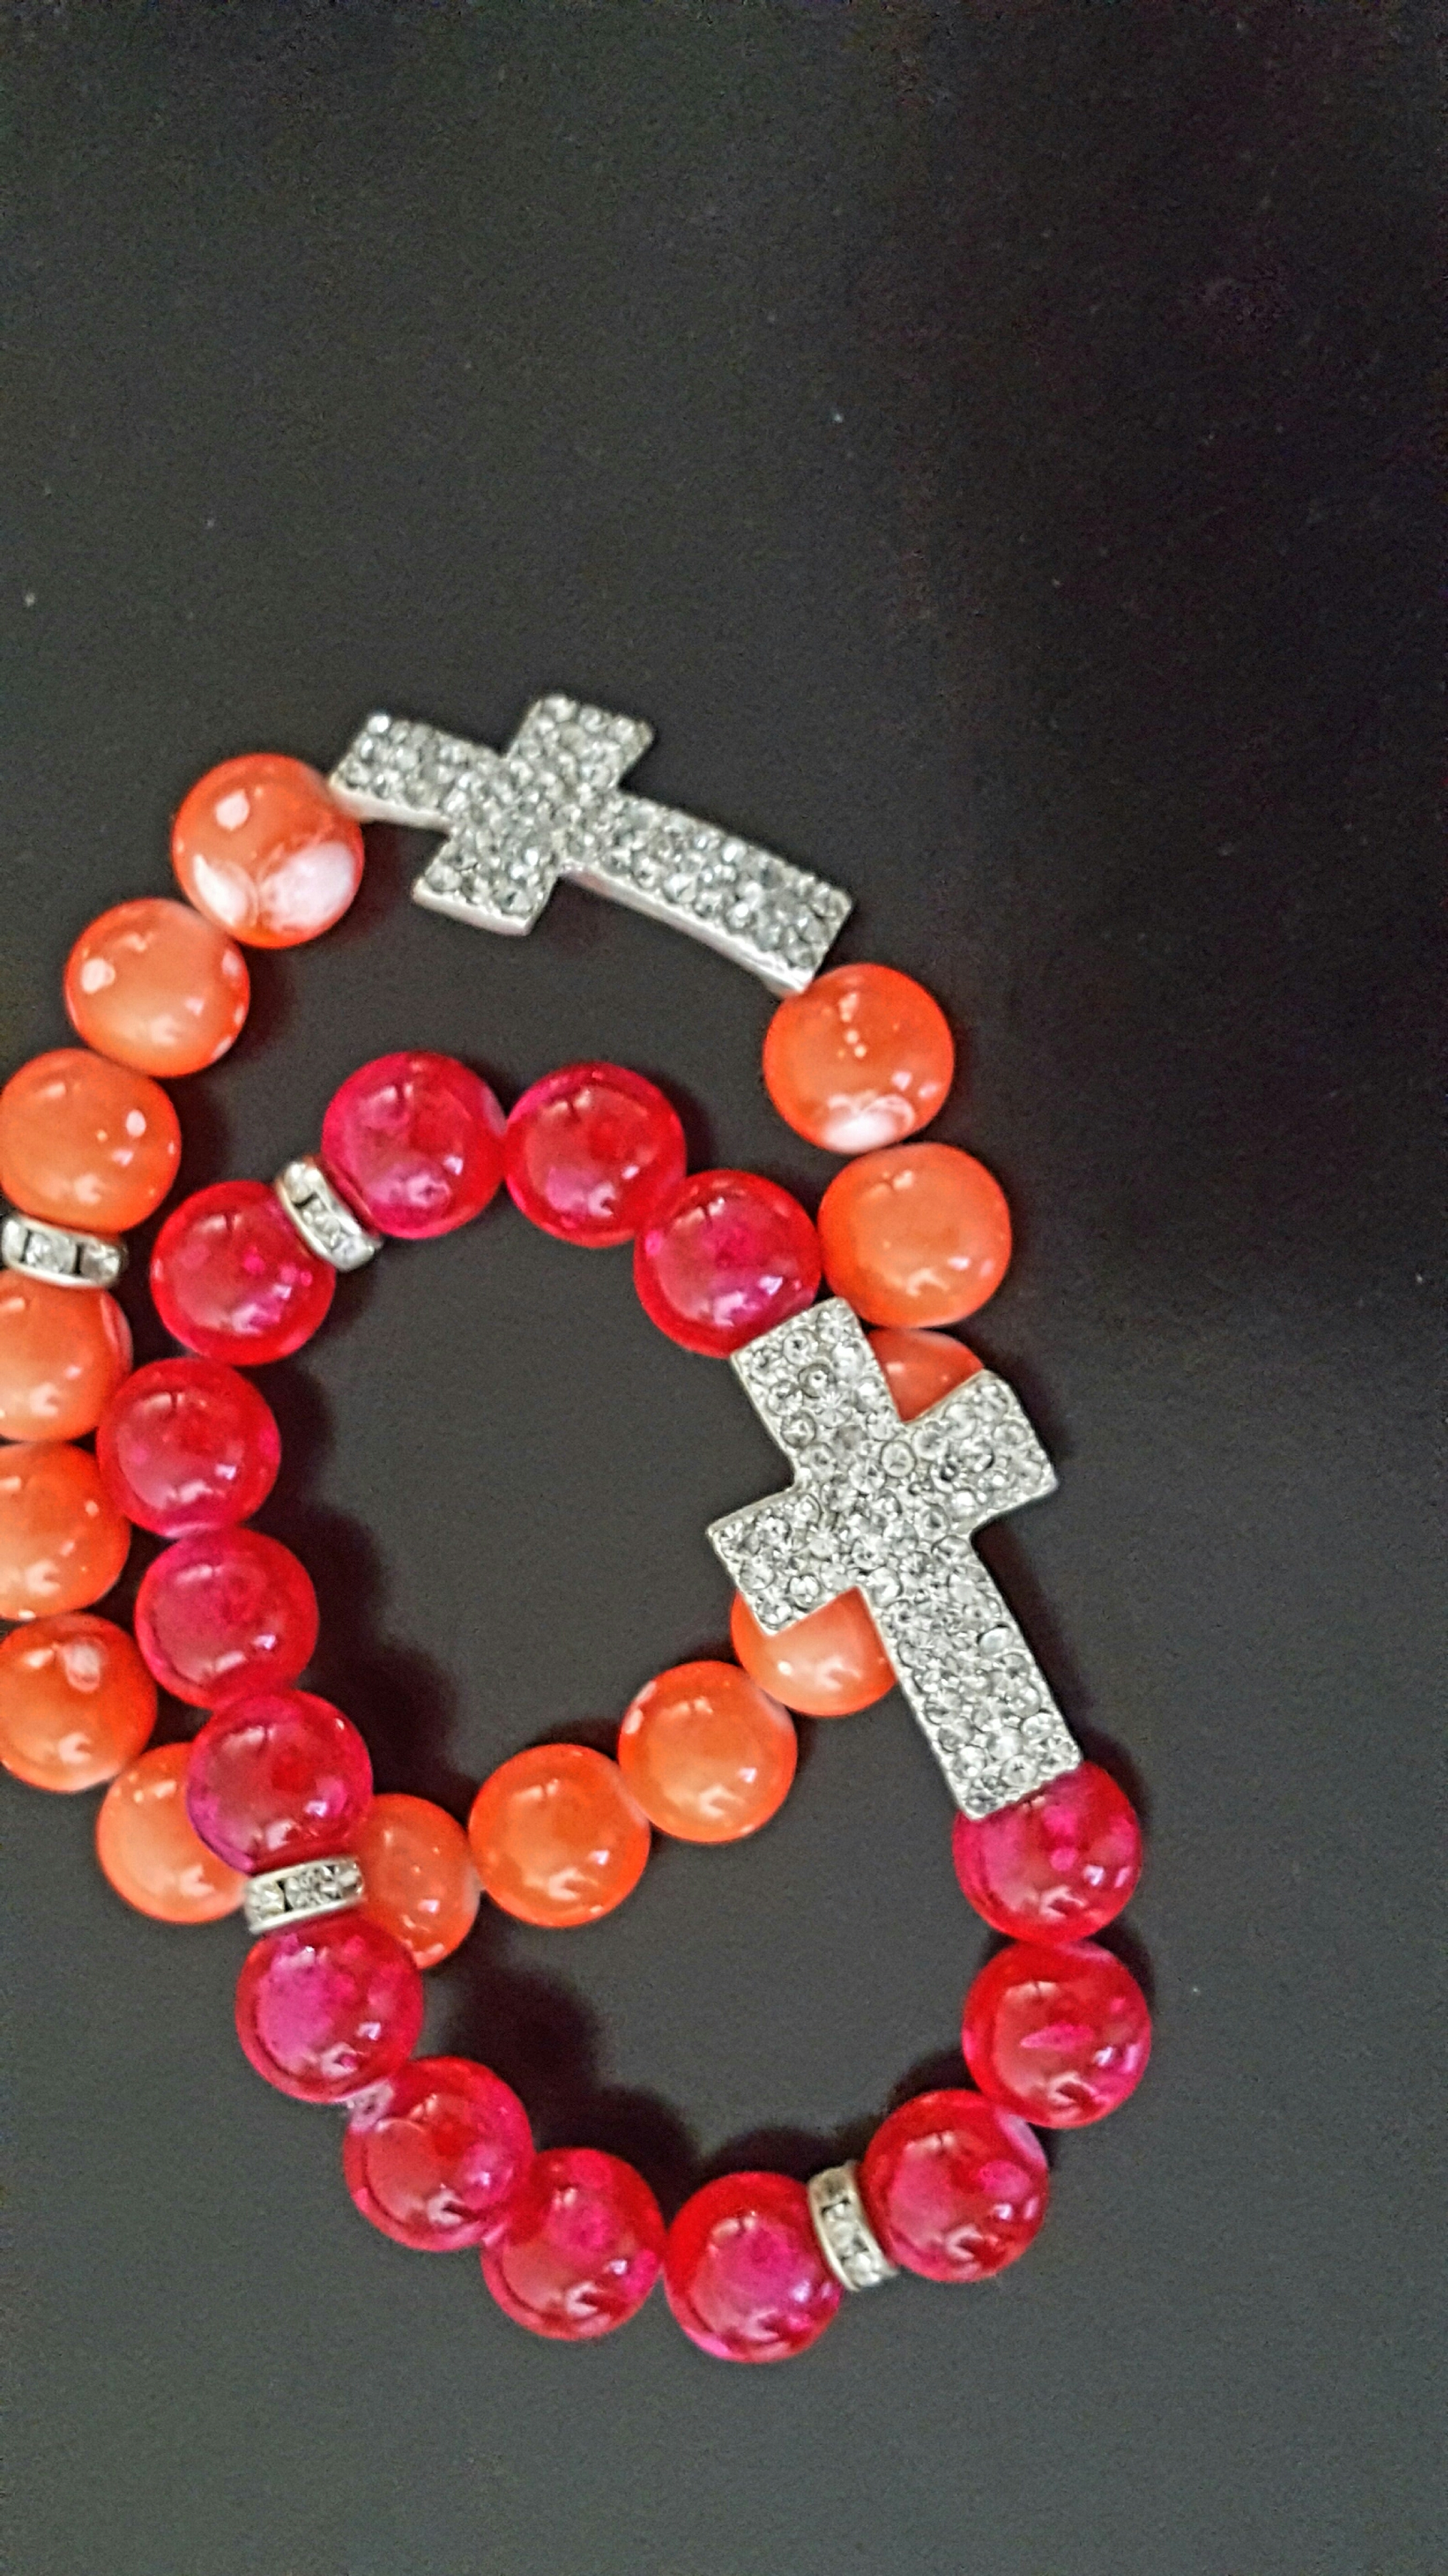 Crystal cross stretch bracelet